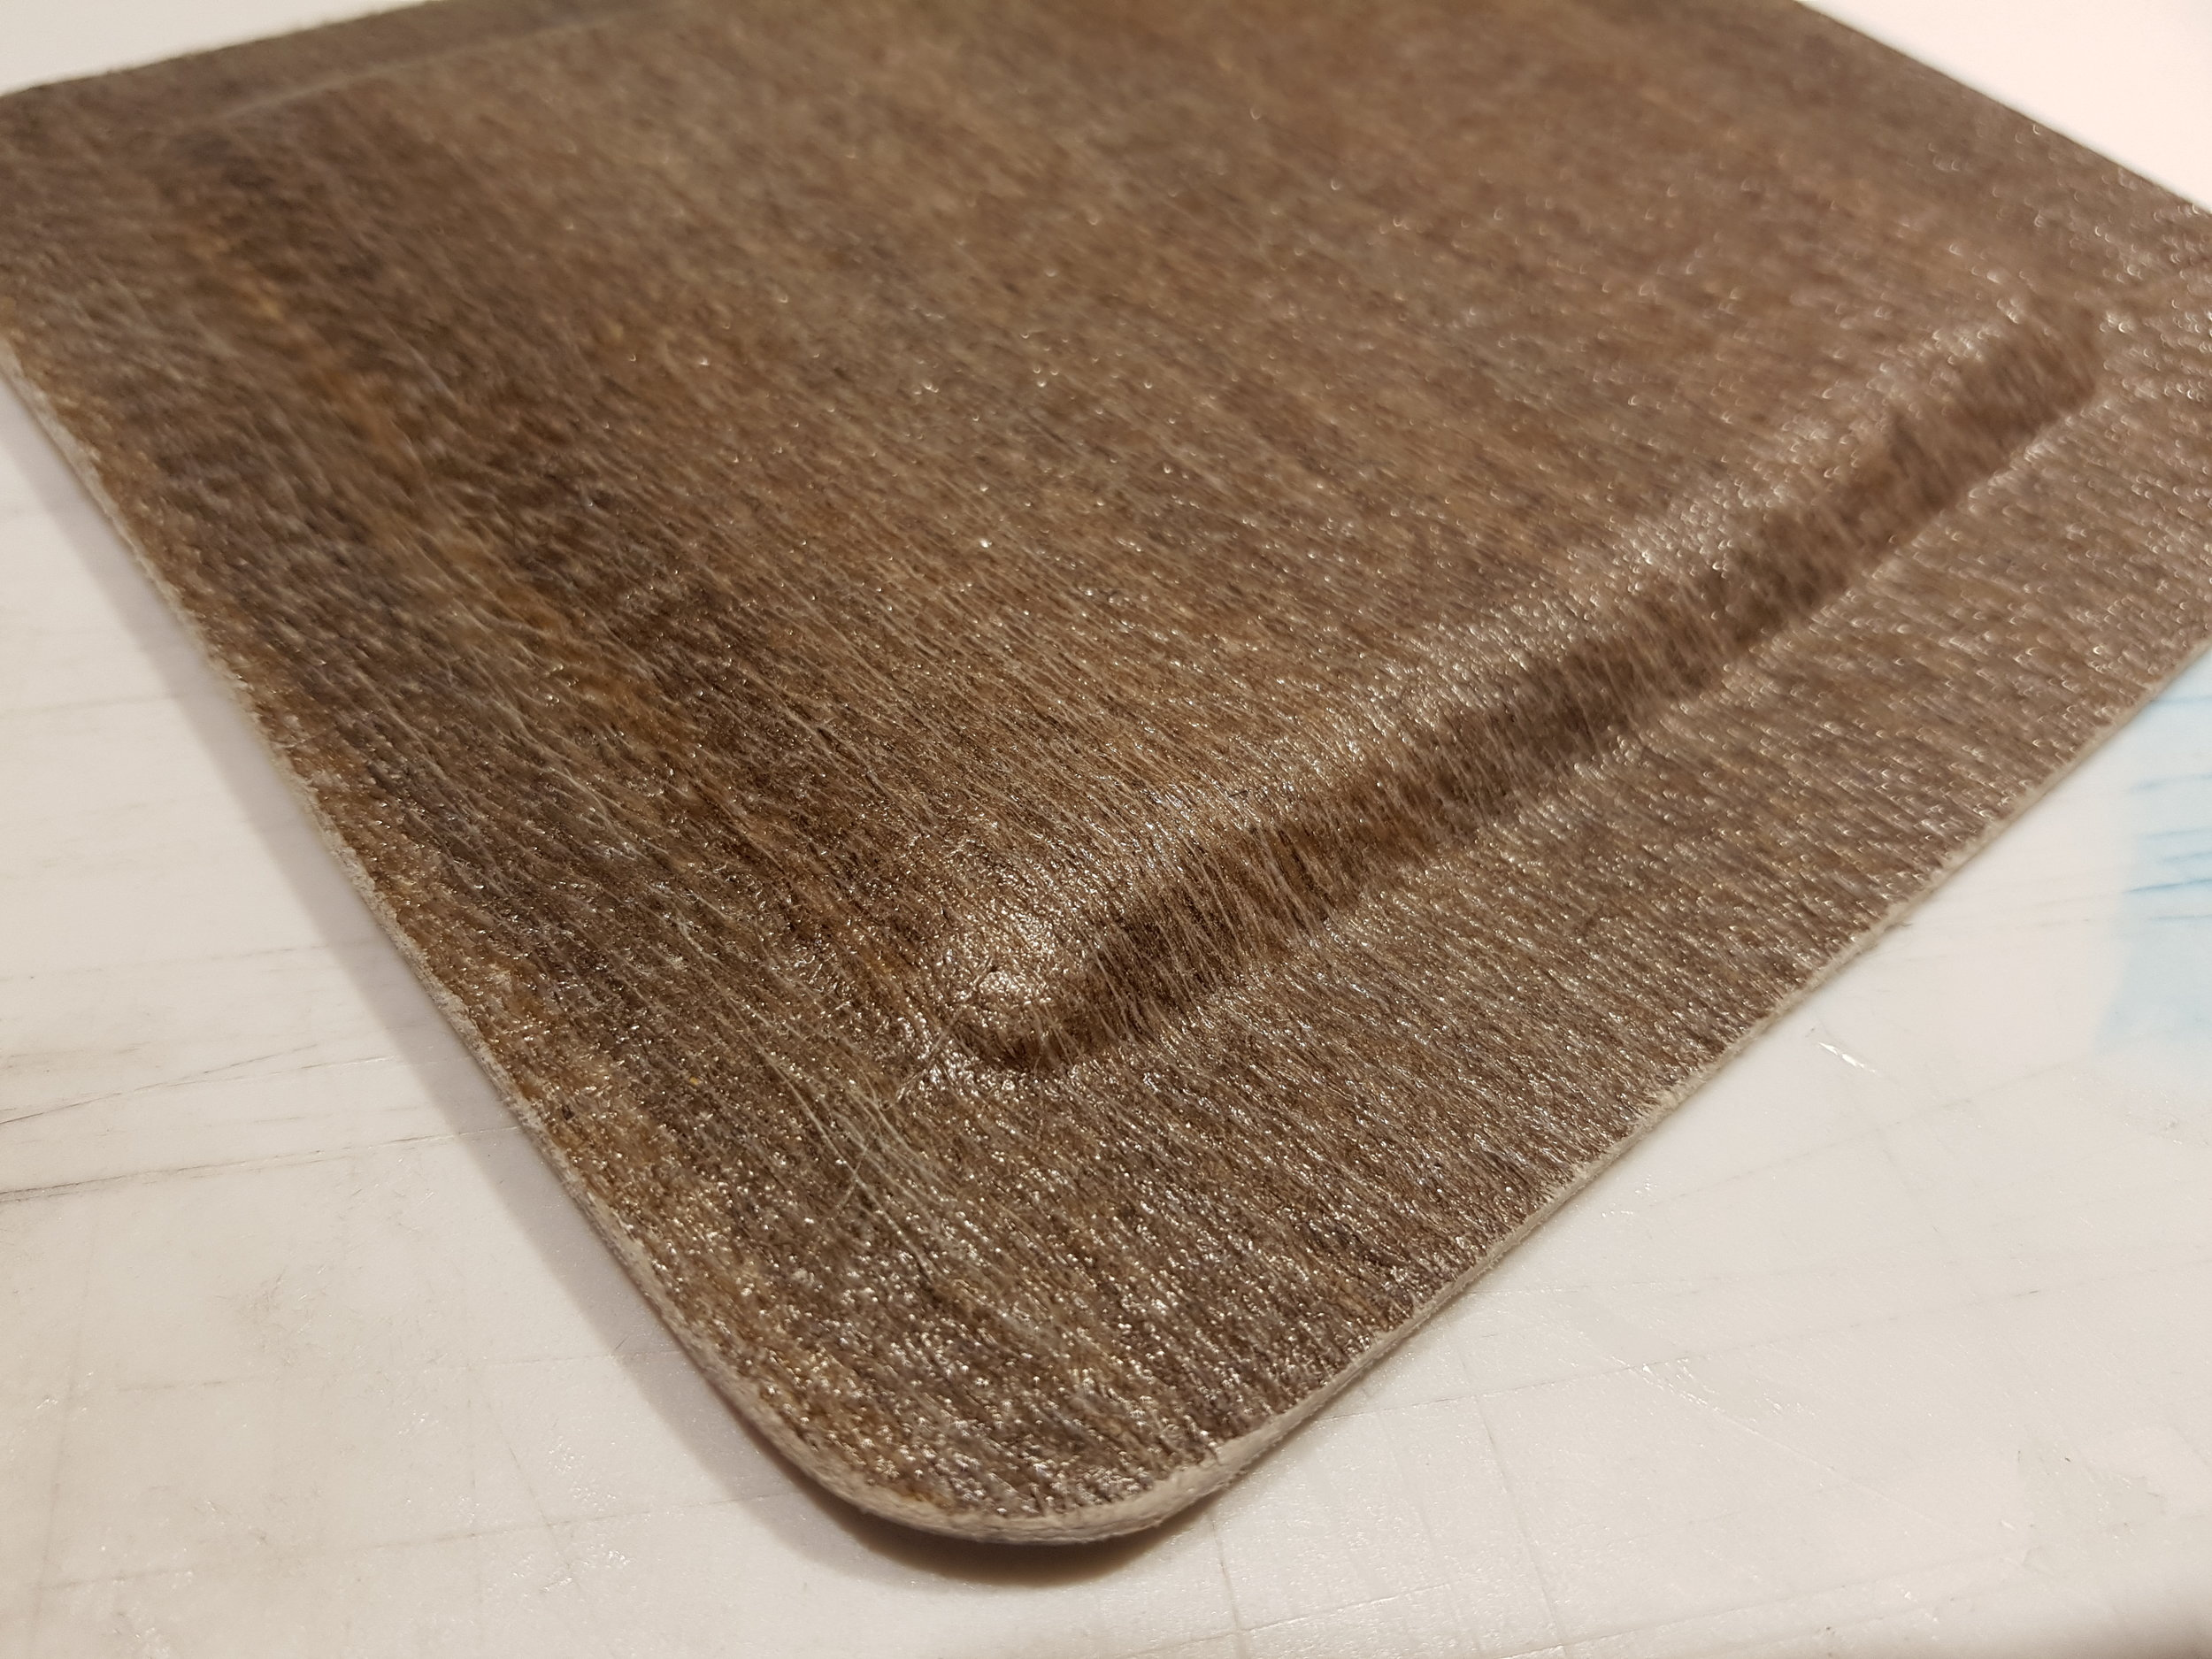 Flax reinforcing fiber and biologically derived epoxy